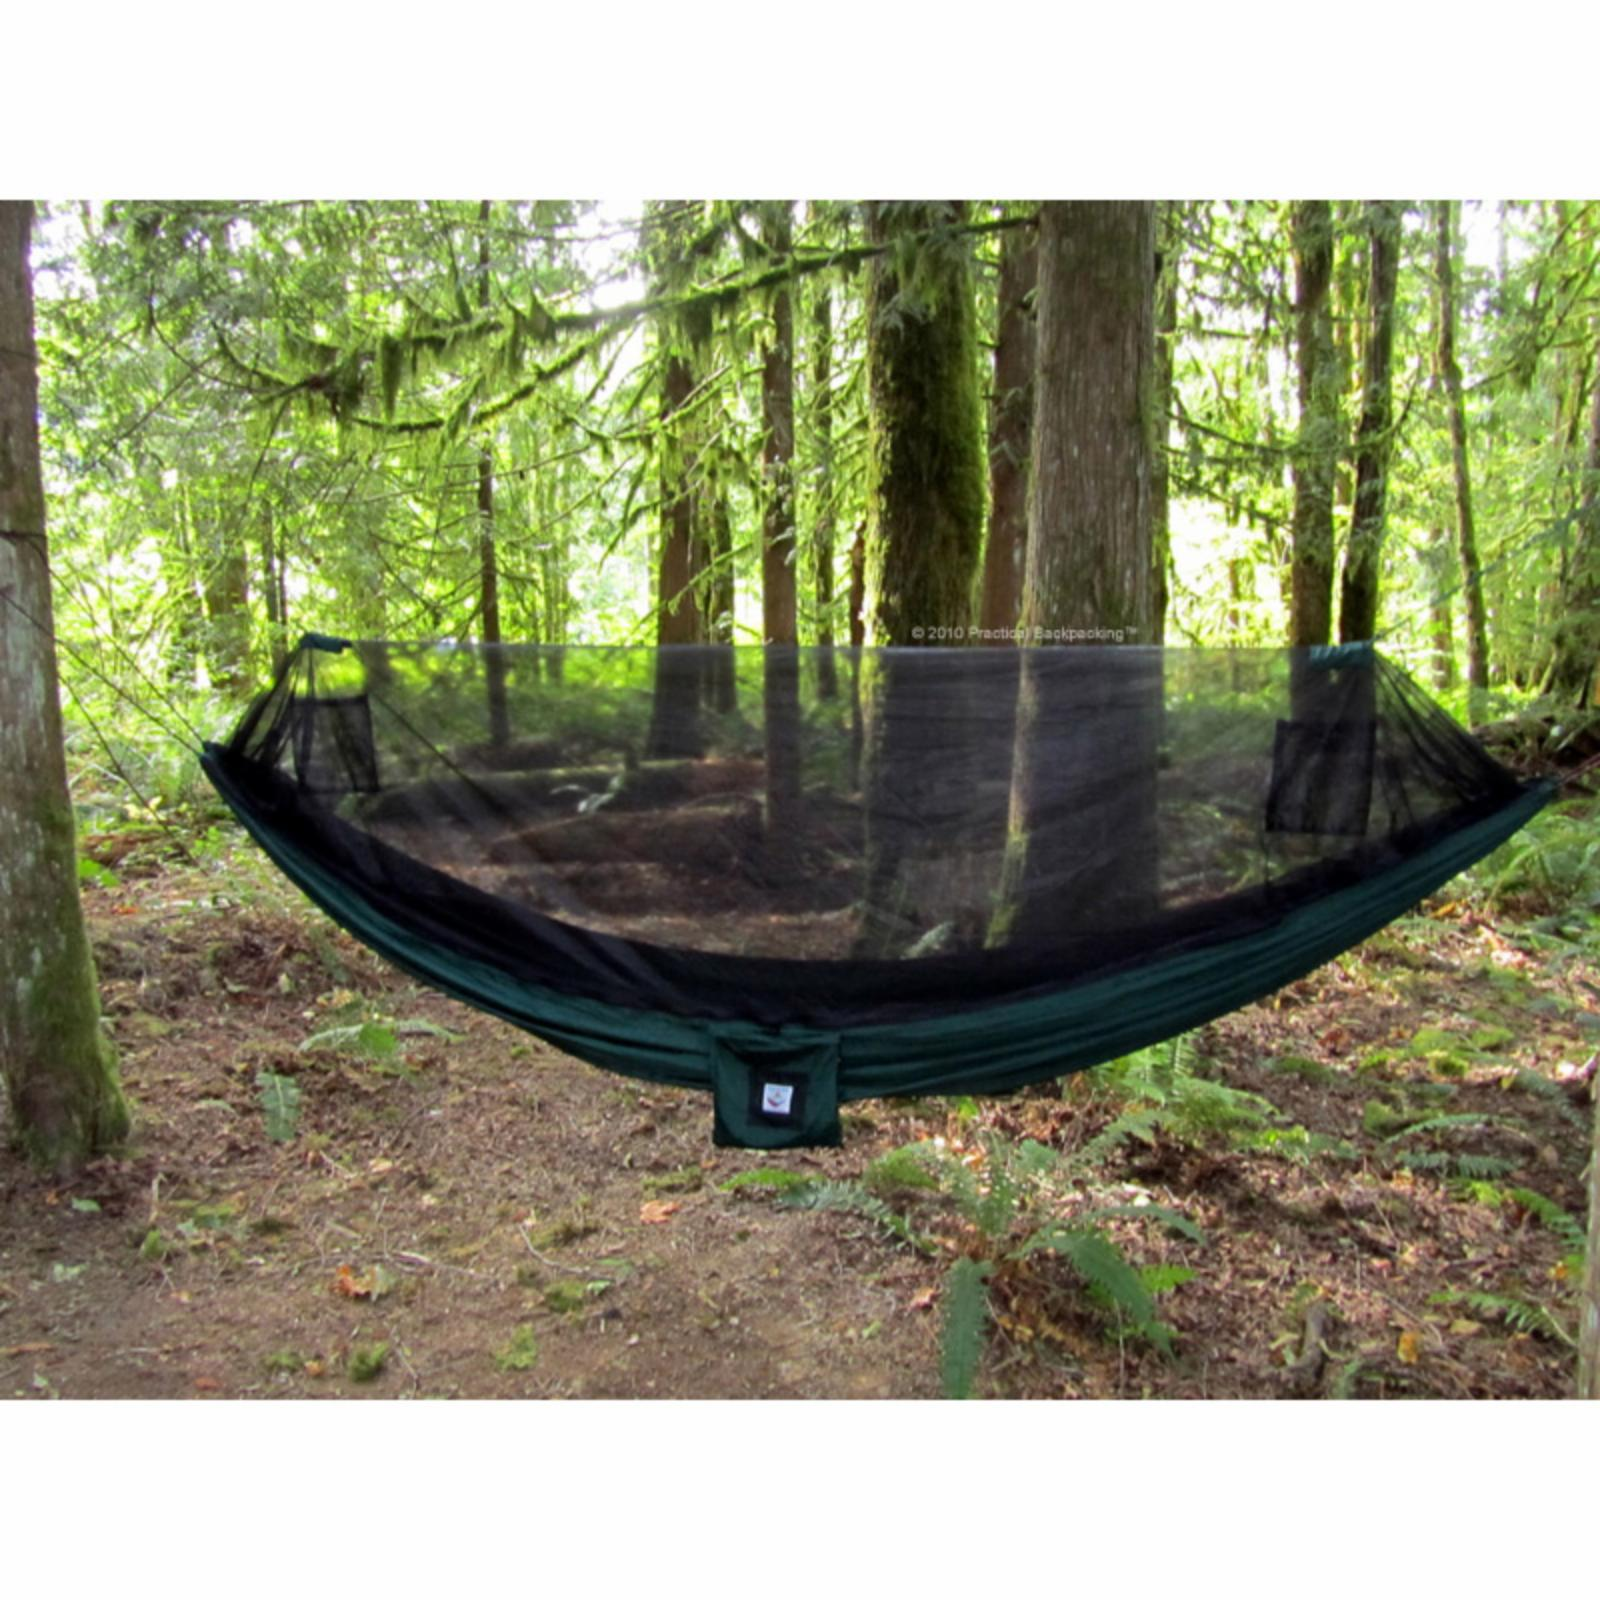 Outdoor Hammock Bliss No-See-Um Mosquito Portable Single Hammock